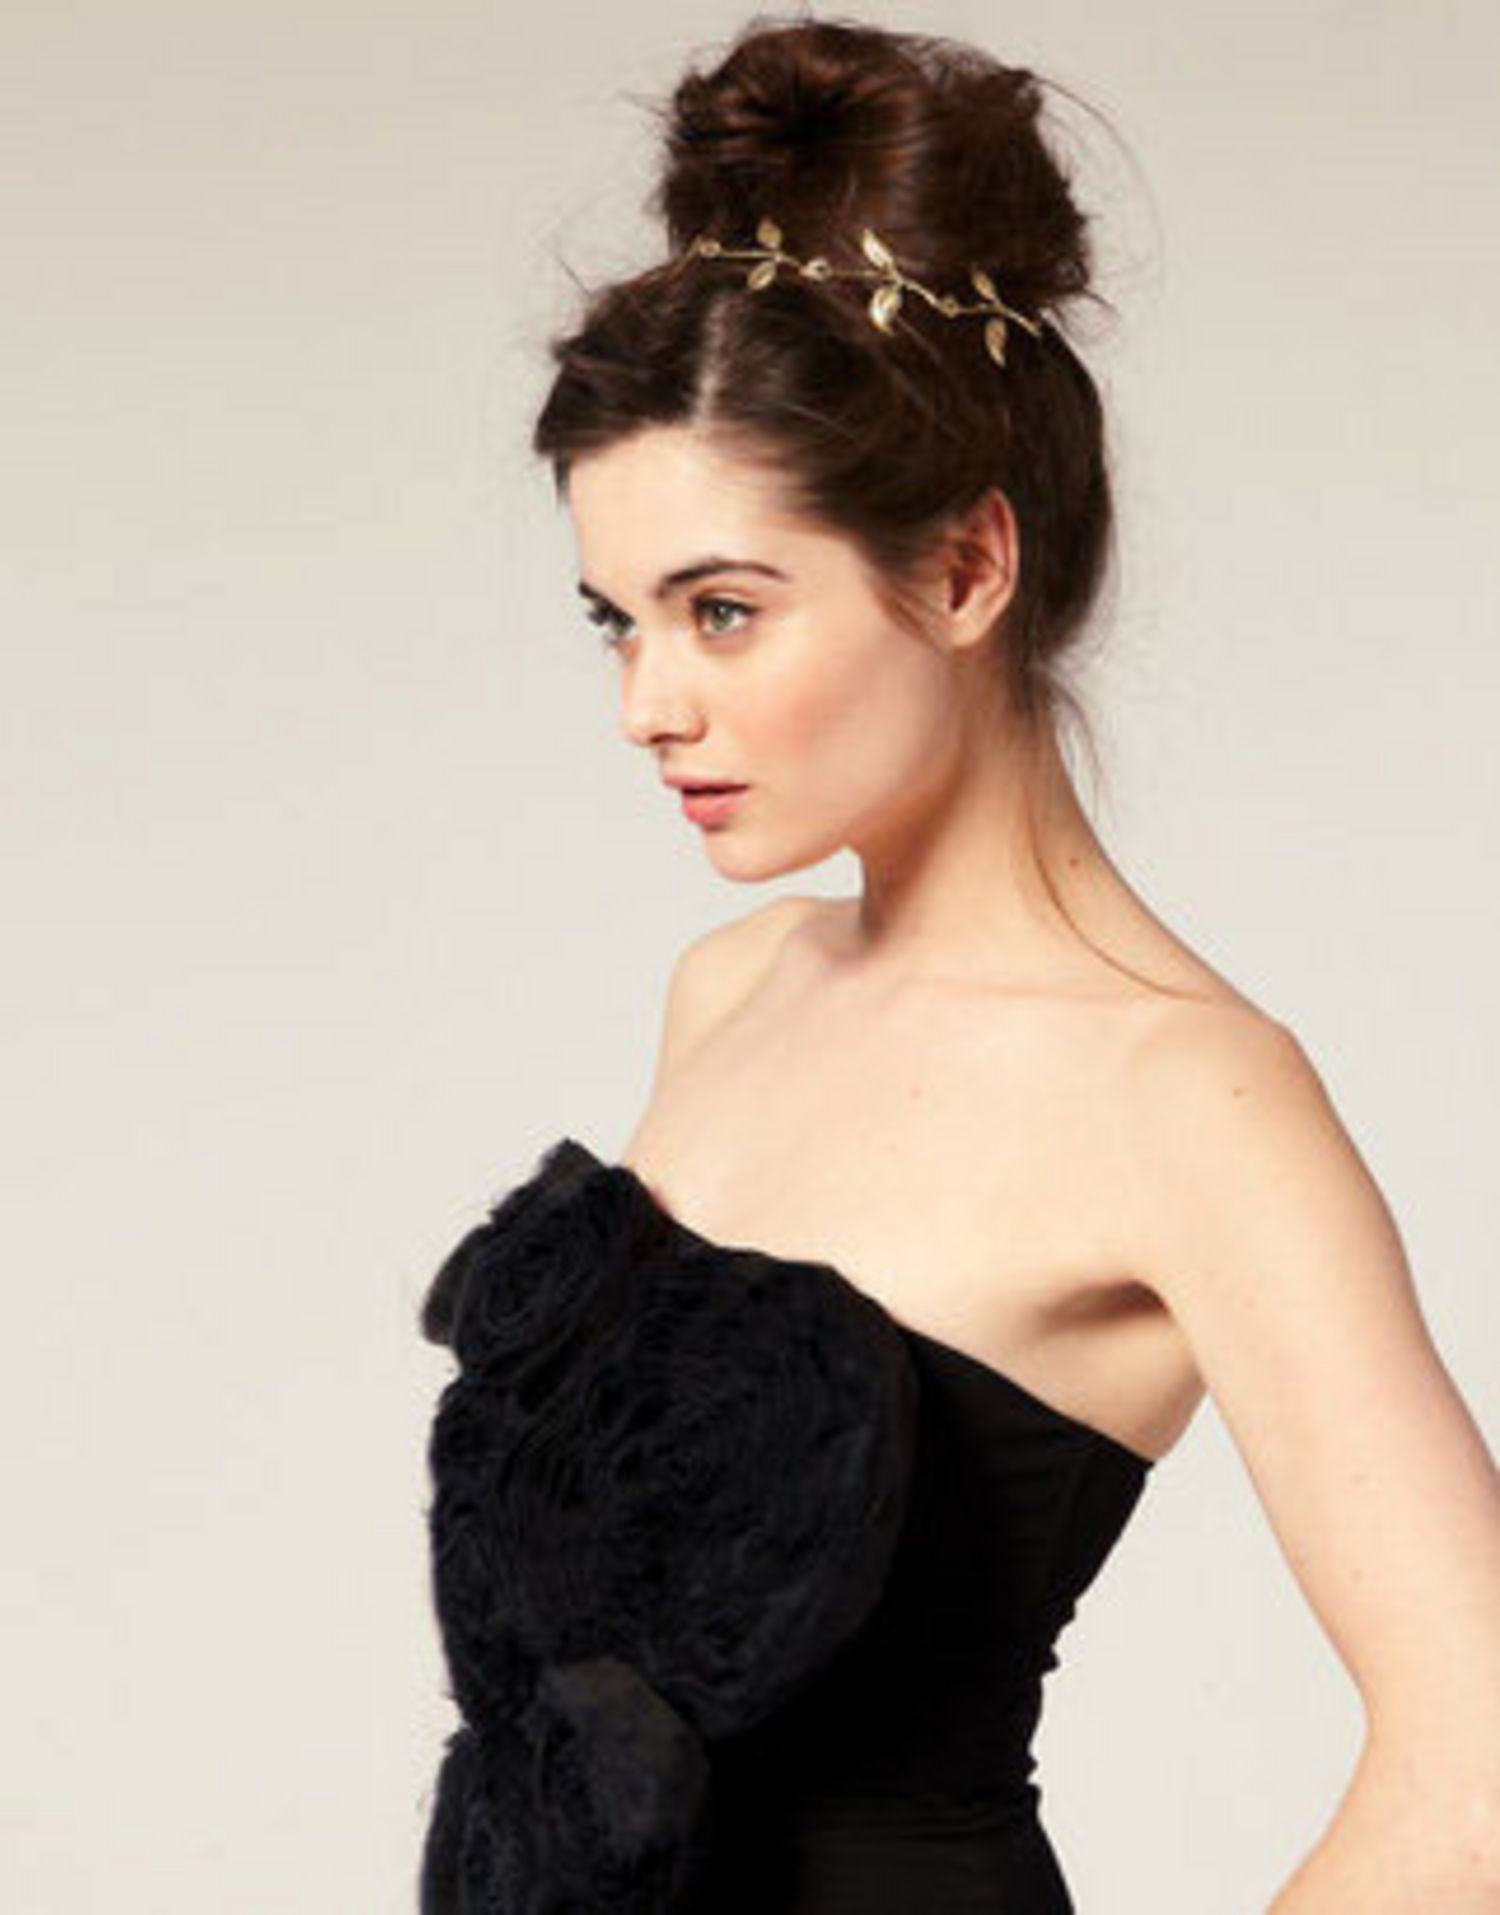 Hair Accessories for New Years Eve - Women Hairstyles